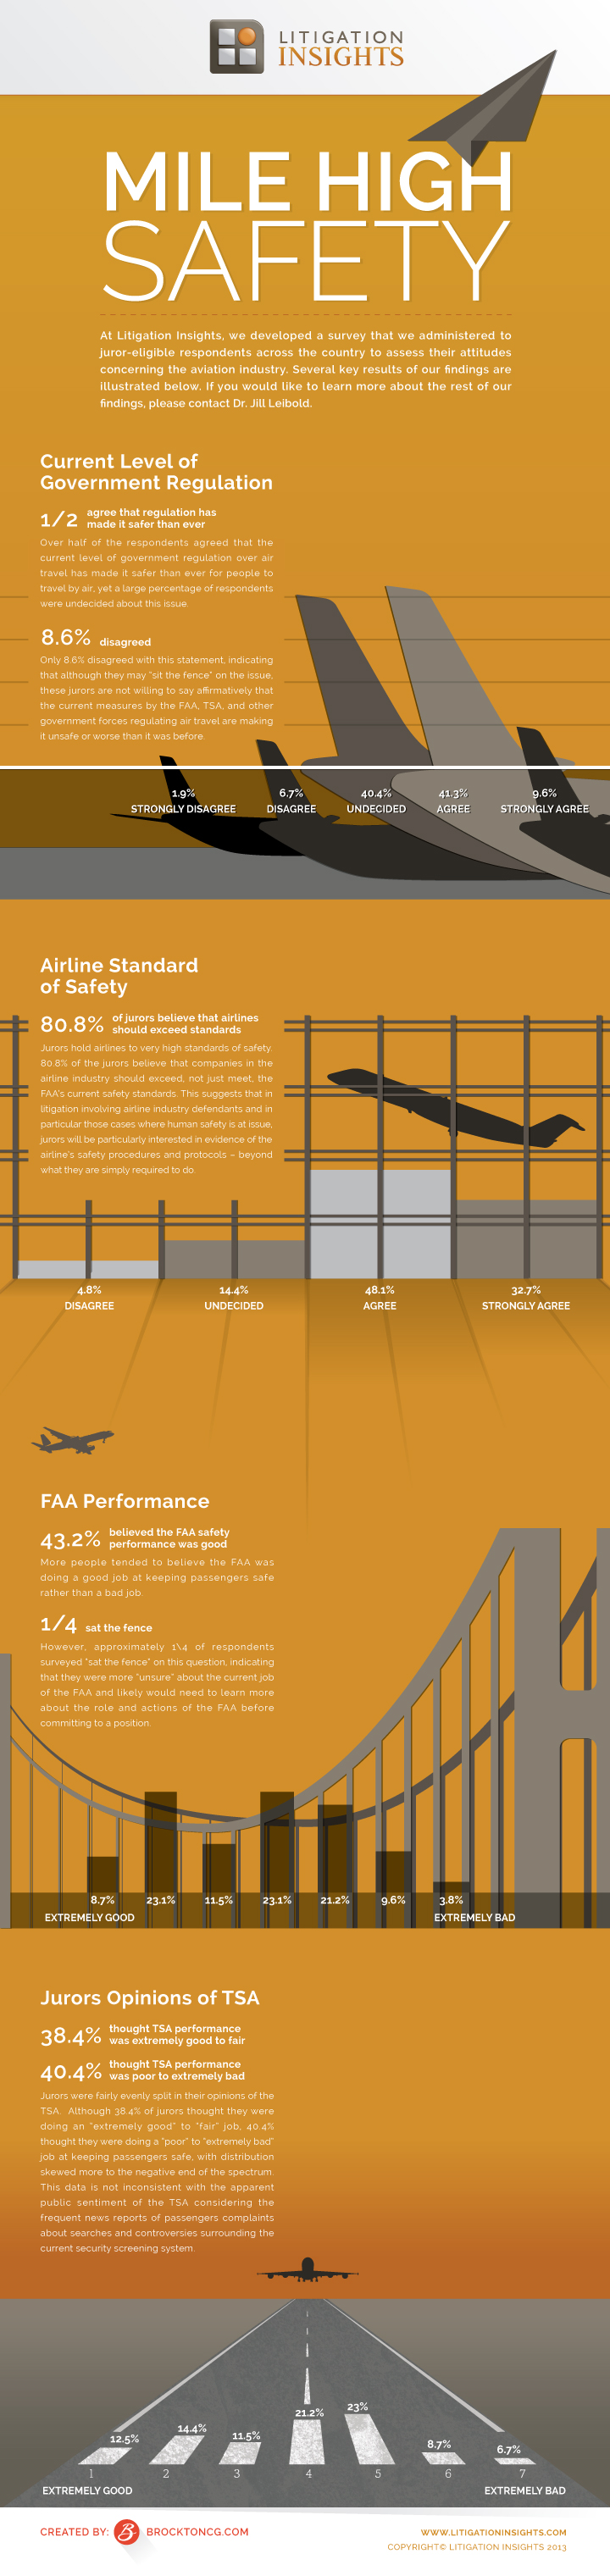 LI_AviationInfograph_24OCT13_905.jpg